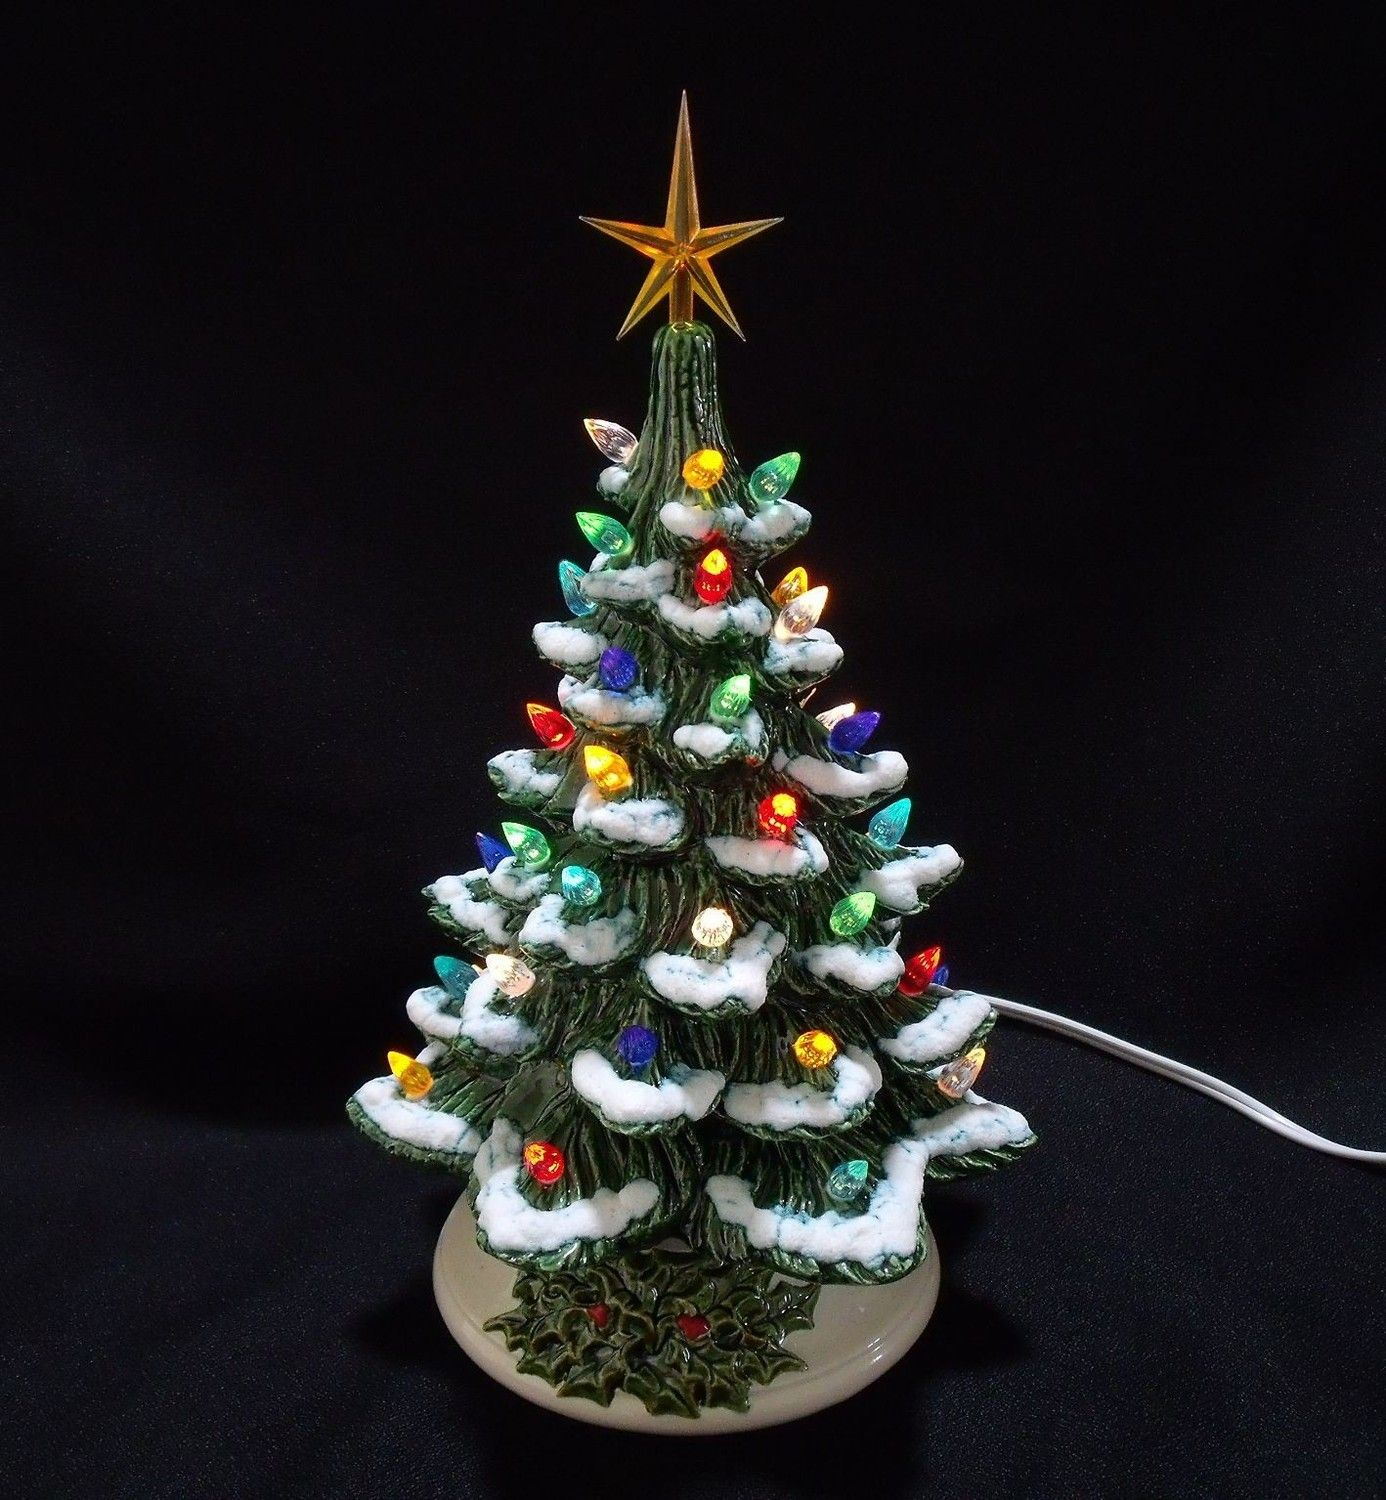 Old Fashioned Ceramic Christmas Tree with Snow 11 Inch